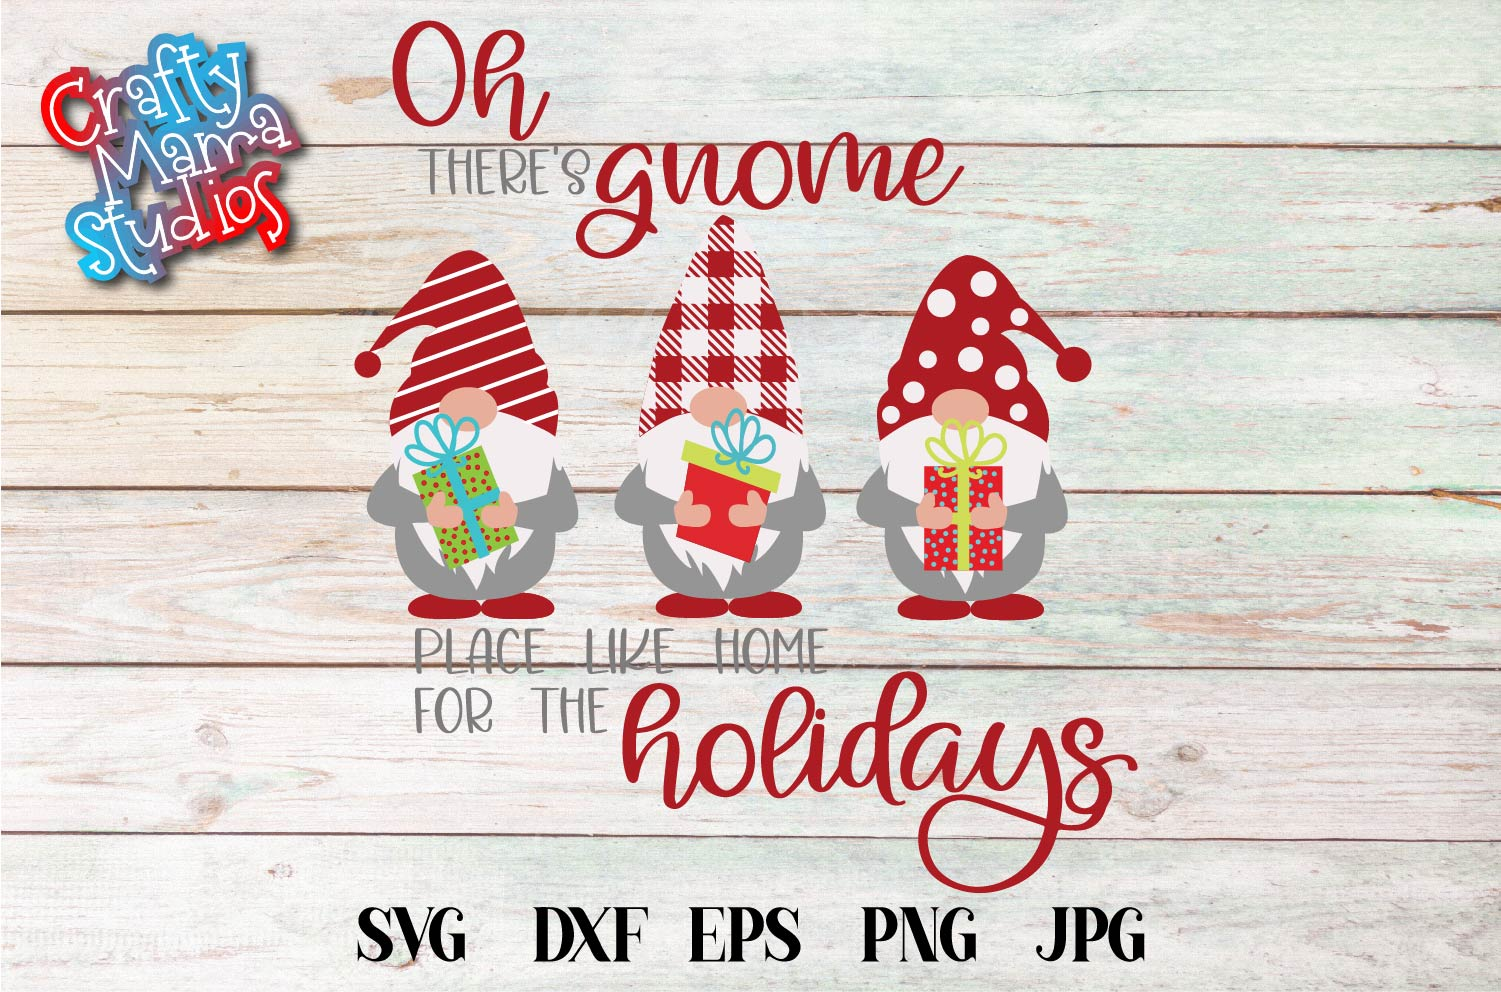 Home For The Holidays SVG, Gnome Place Like Home SVG example image 2